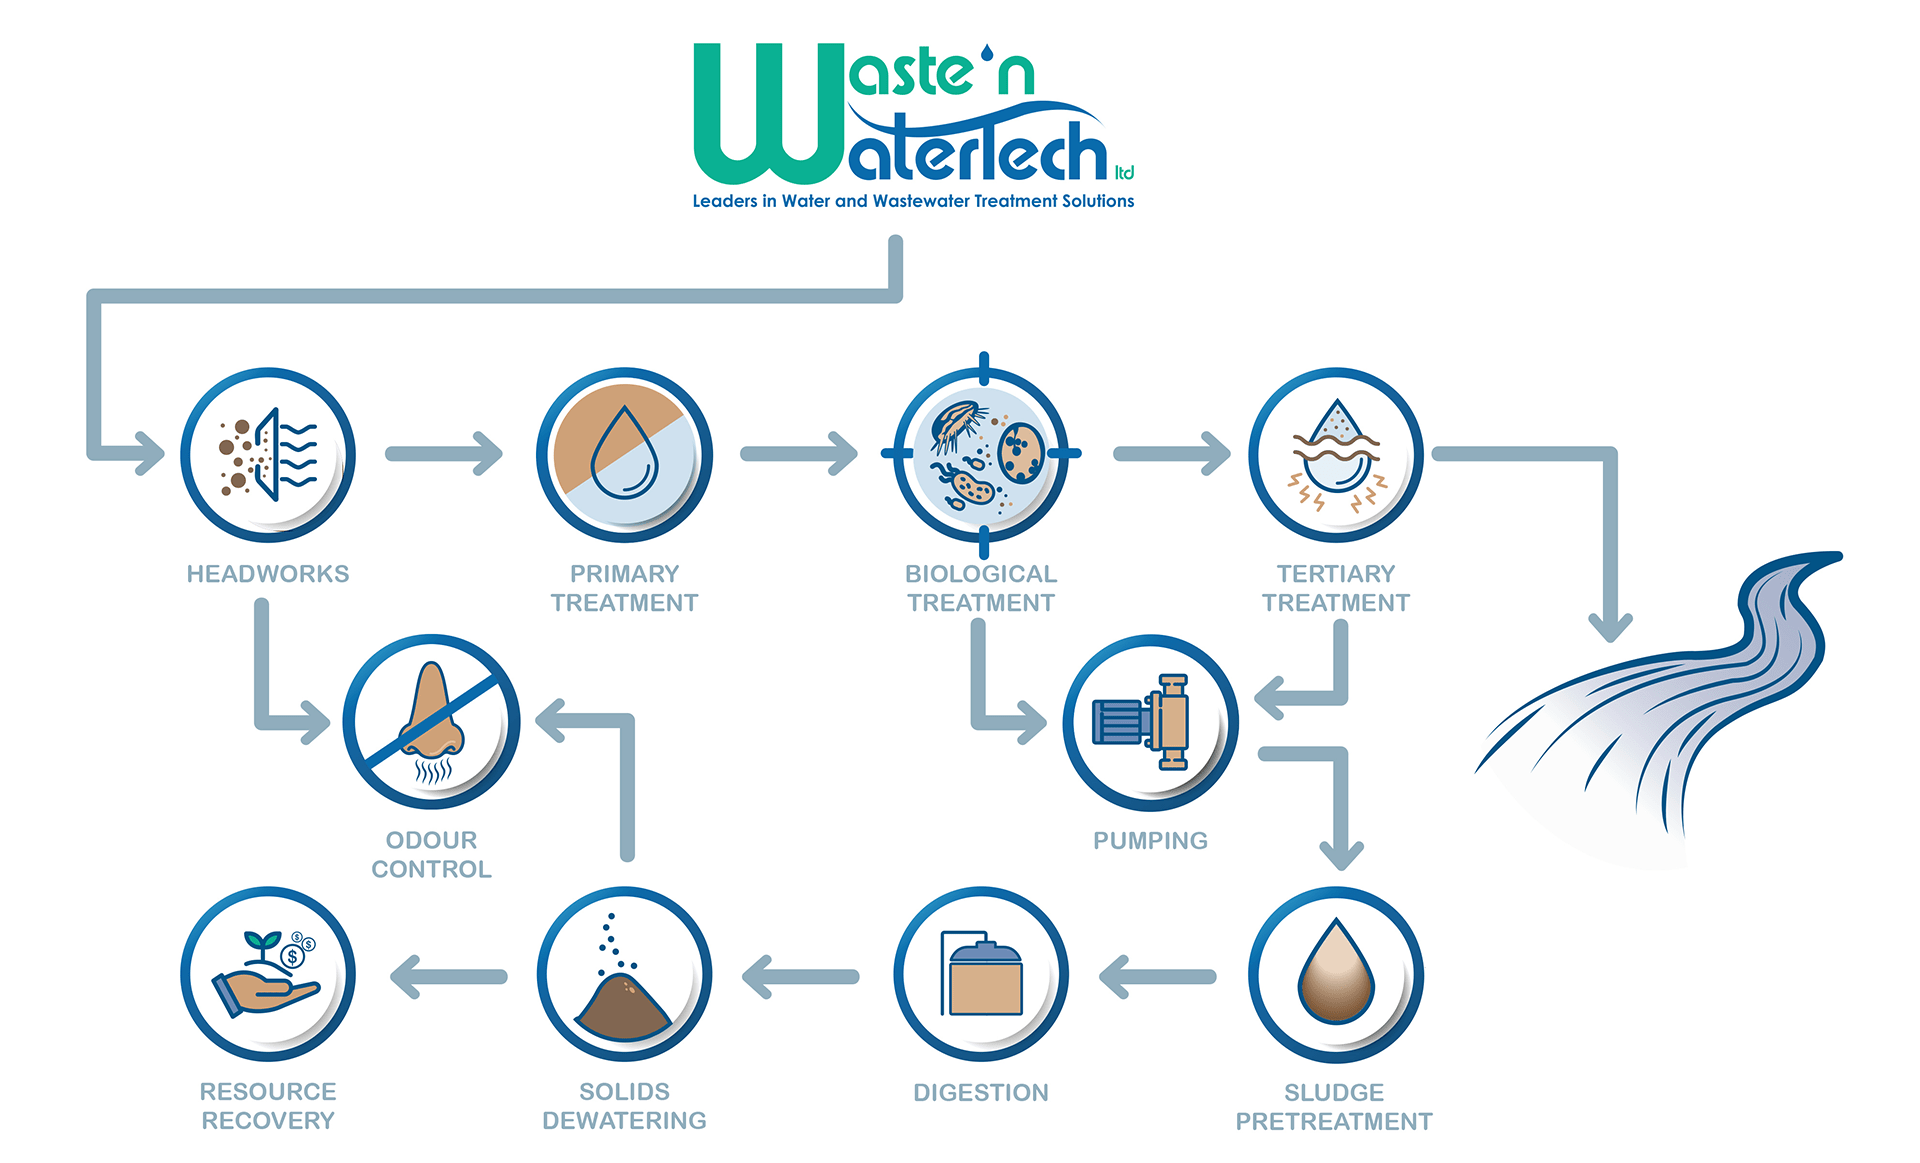 Waste'n WaterTech | Water and Wastewater Treatment Solutions